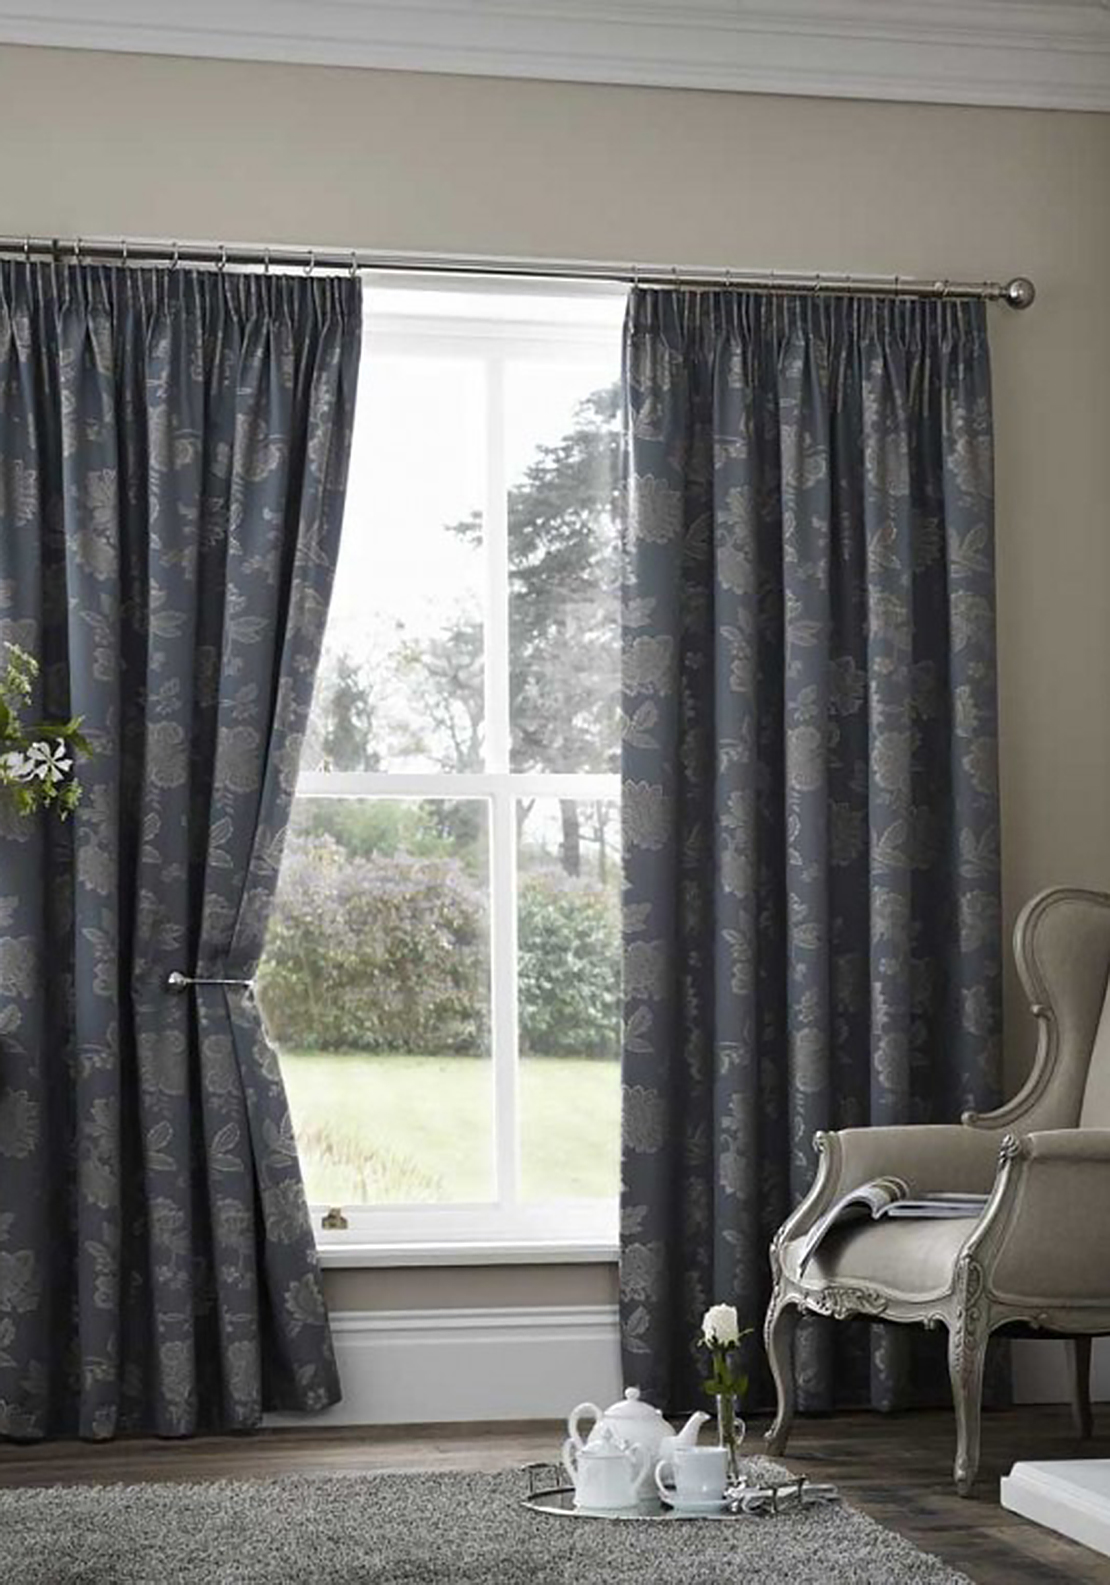 Curtina Palmero Thermal Black Out Curtains, Teal